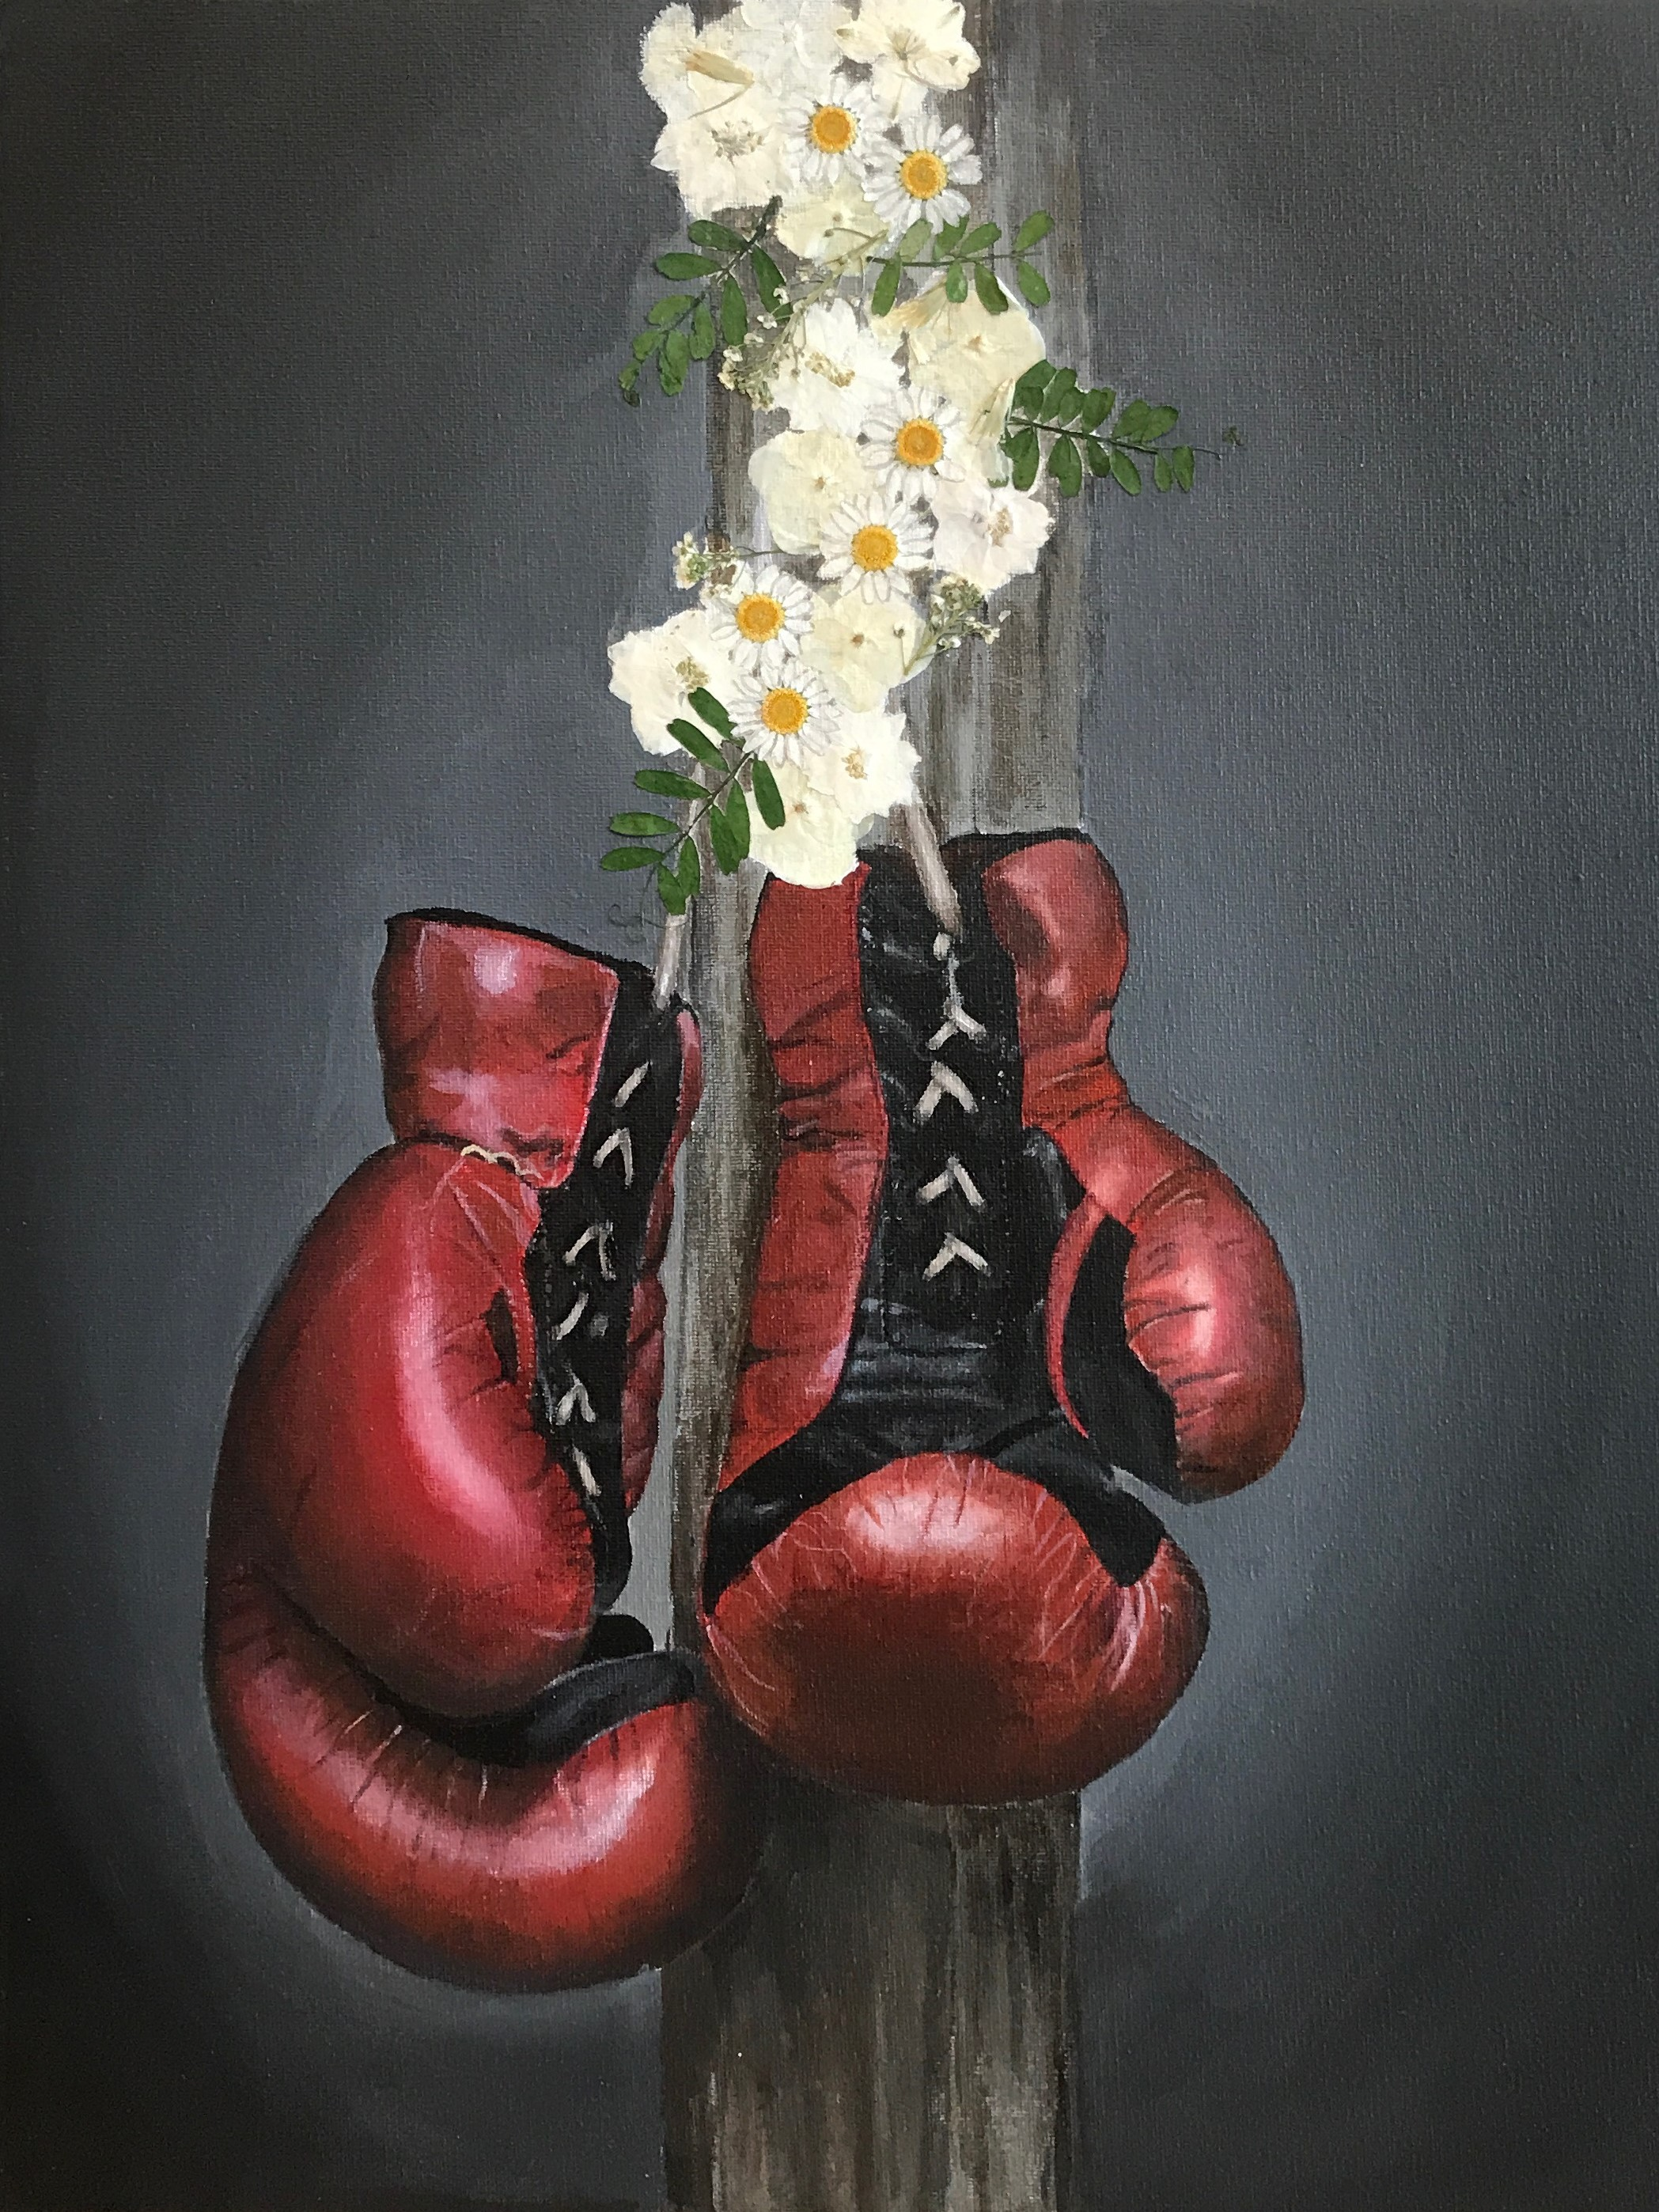 Annabelle Schlesinger  Fight Like a Girl, 2019  Acrylic on Canvas, 20x16in